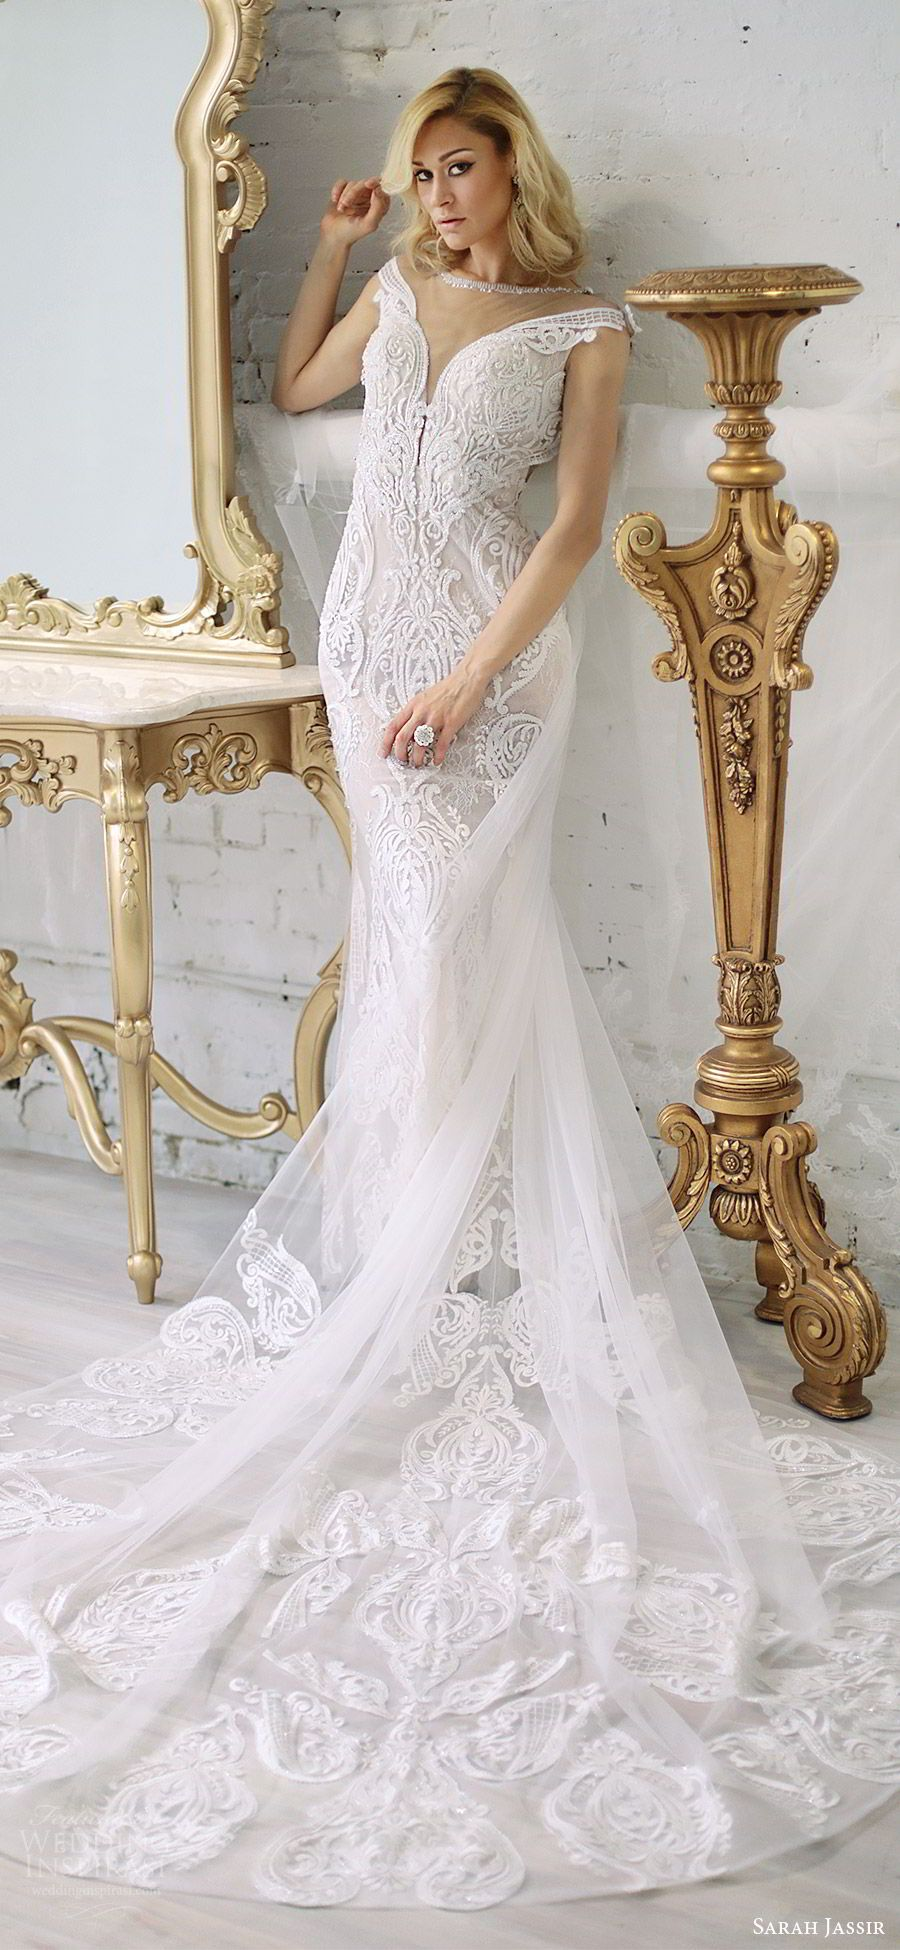 Sarah jassir wedding dresses u uctreasureud couture bridal